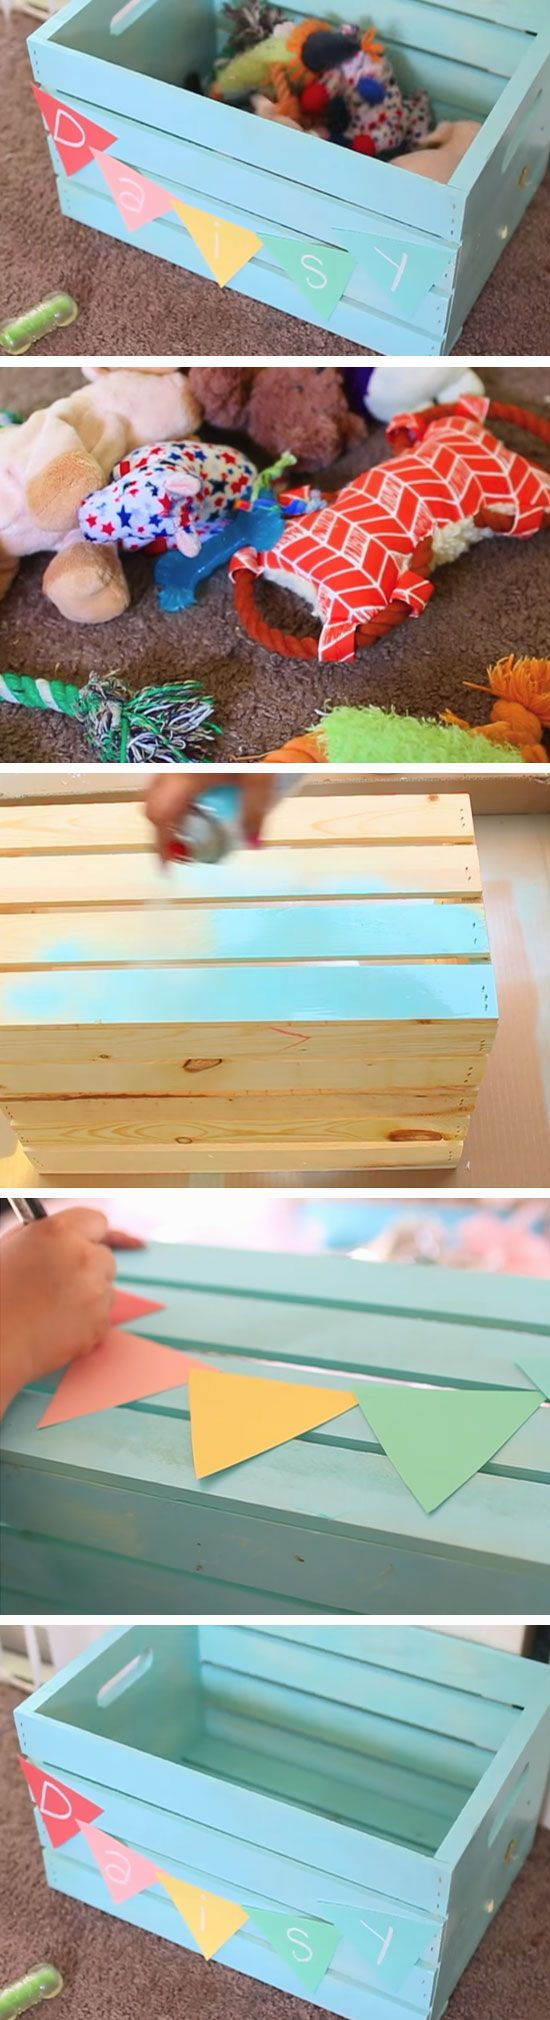 25+ unique White wooden toy box ideas on Pinterest | Wooden toy ...